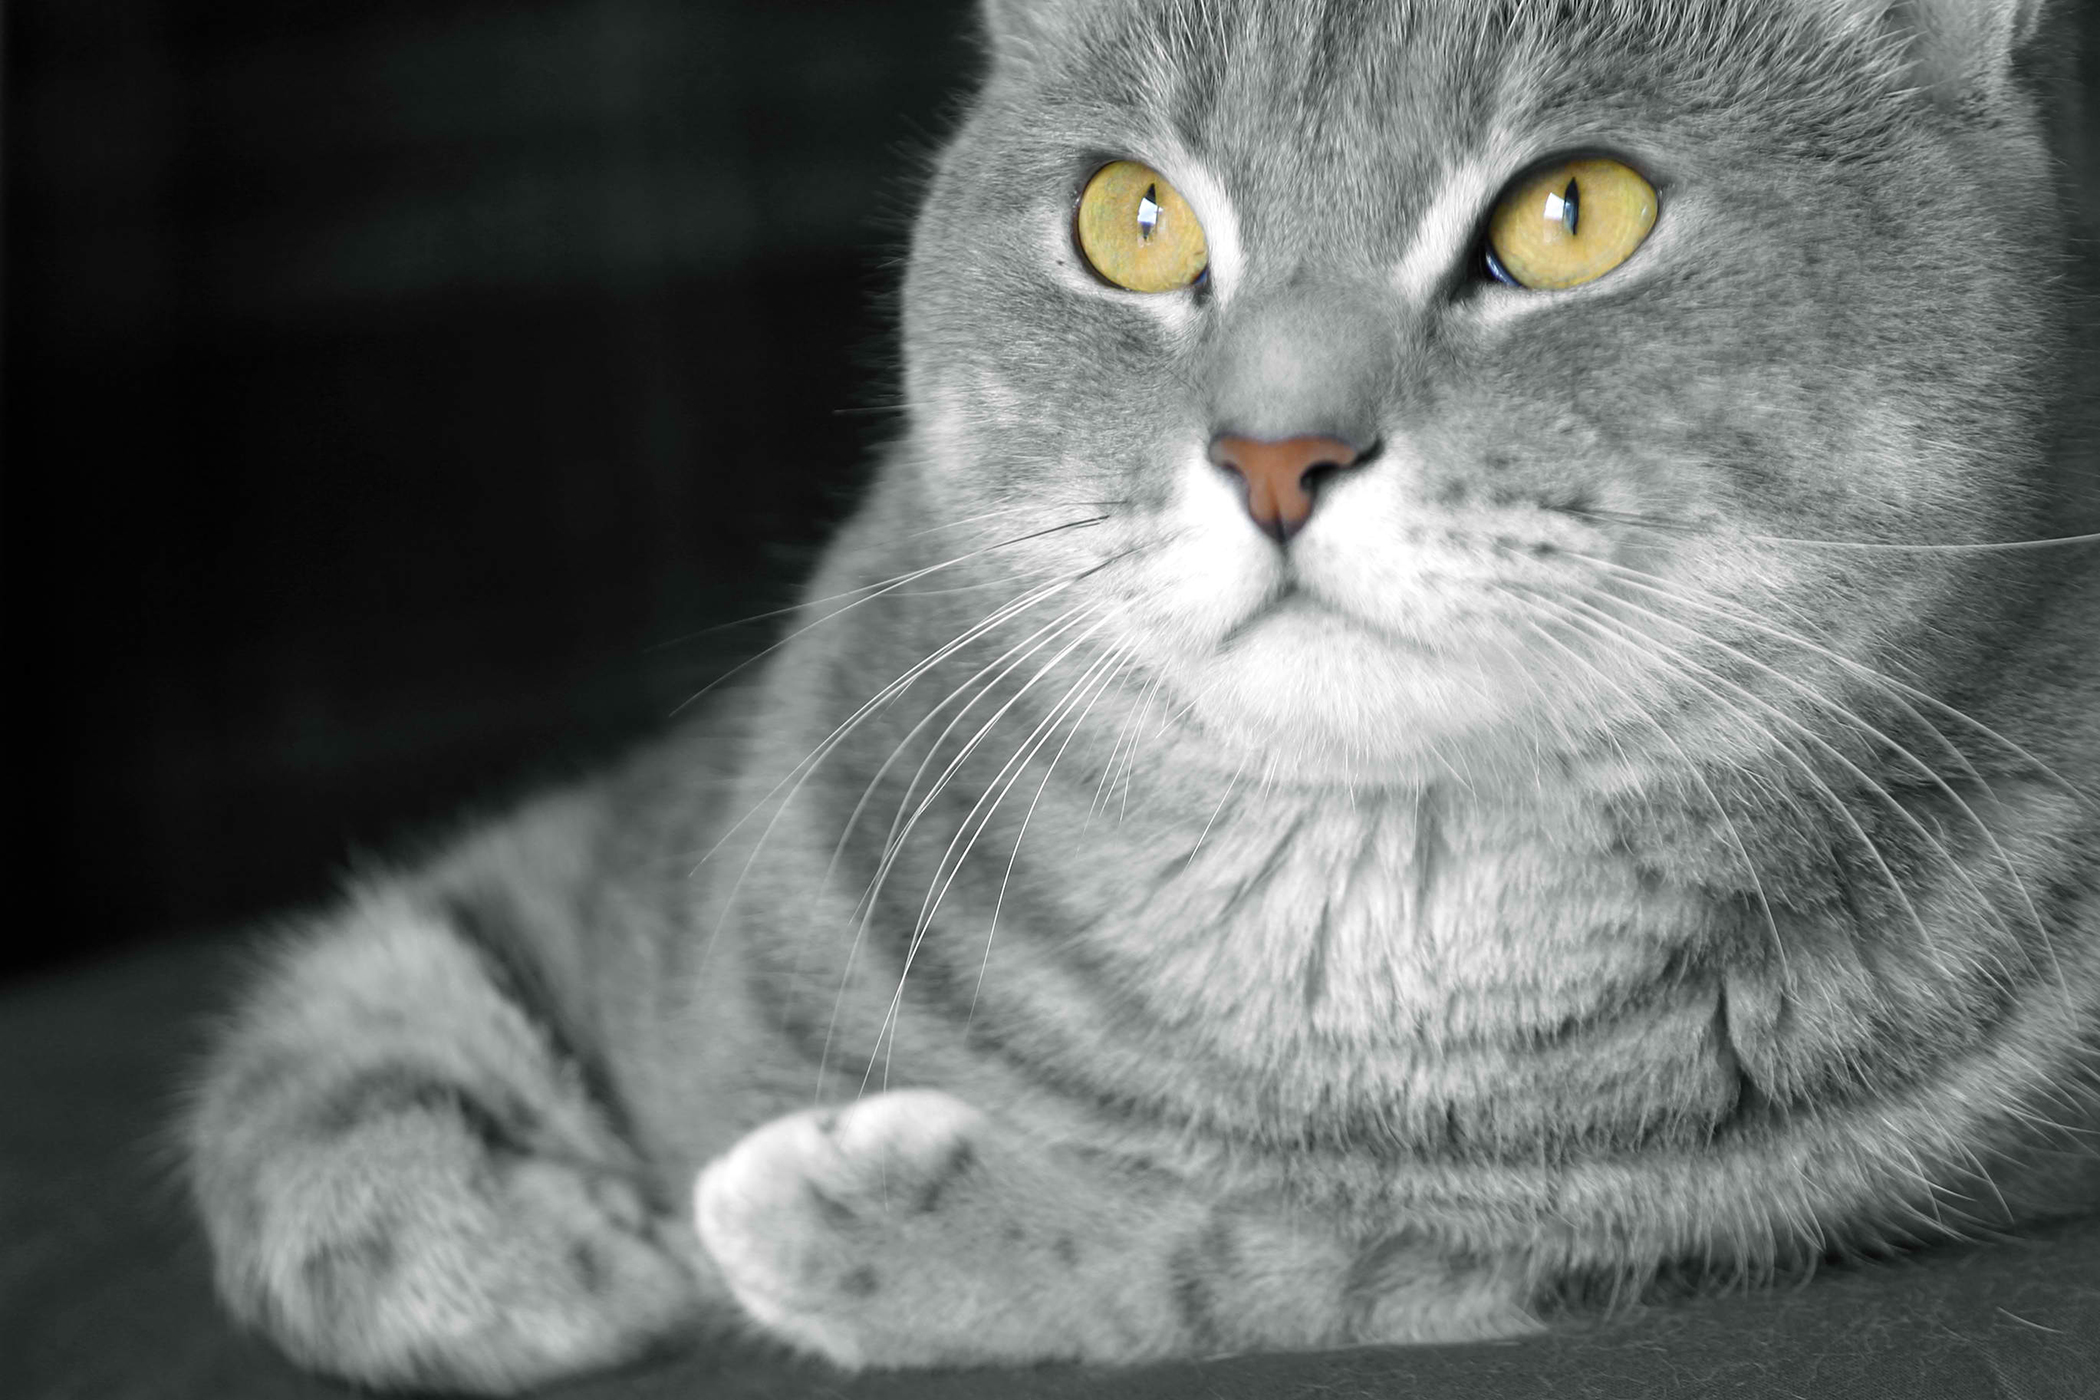 Prostate Enlargement in Cats